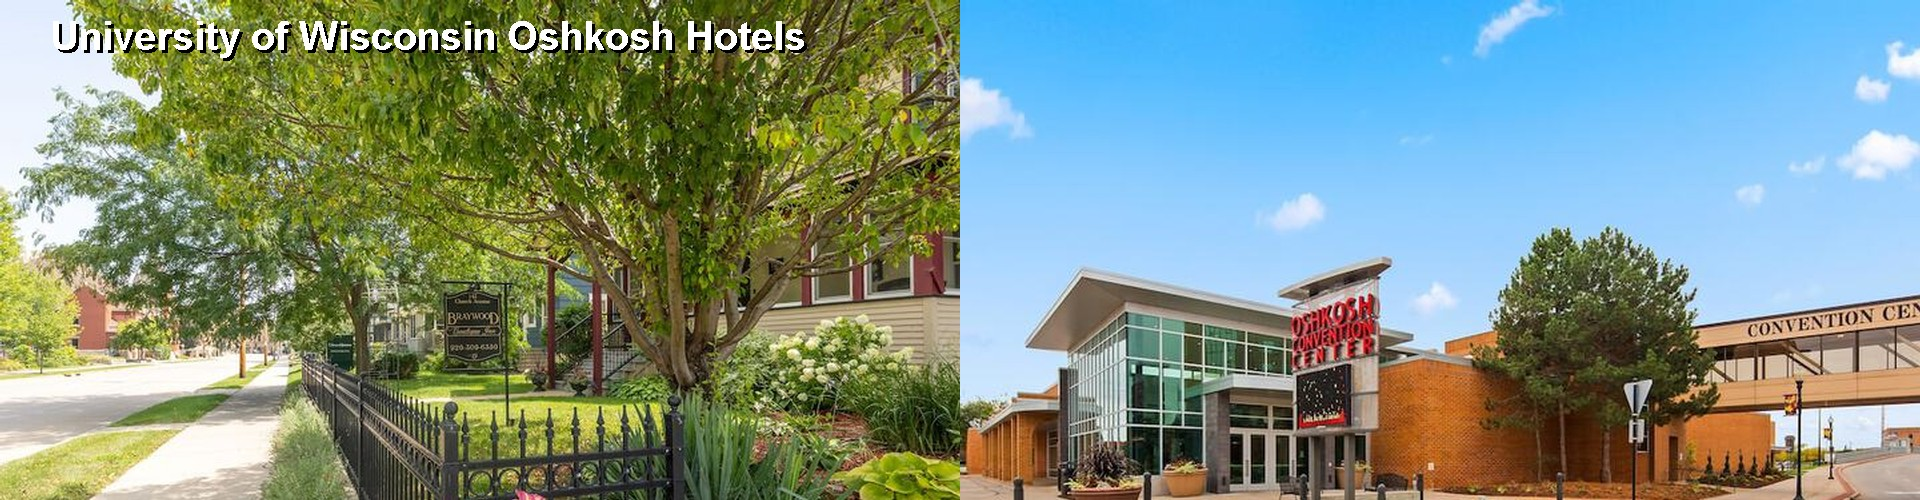 5 Best Hotels near University of Wisconsin Oshkosh